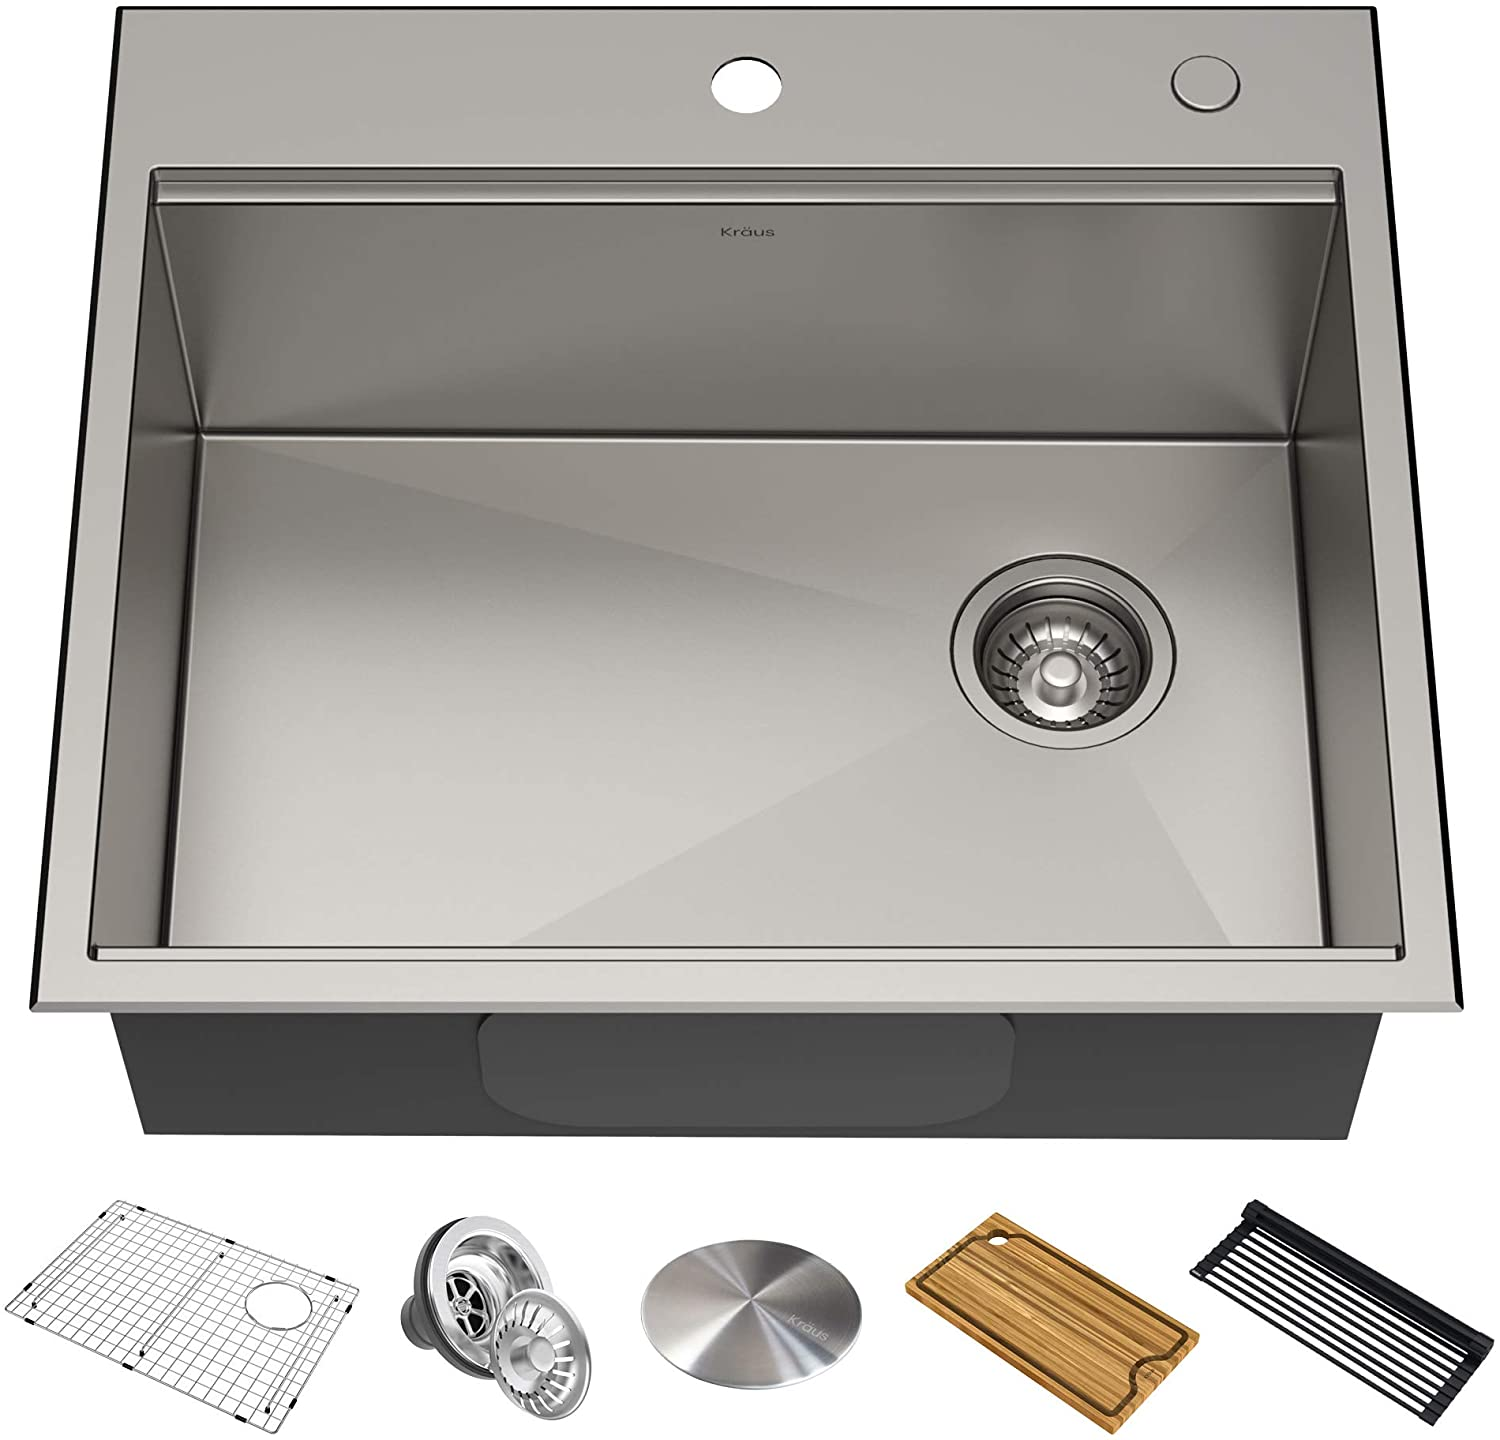 KRAUS KWT311-25 Kore Workstation 25-inch Drop-In or Undermount 16 Gauge Single Bowl Stainless Steel Kitchen Sink with Integrated Ledge and Accessories (Pack of 5)